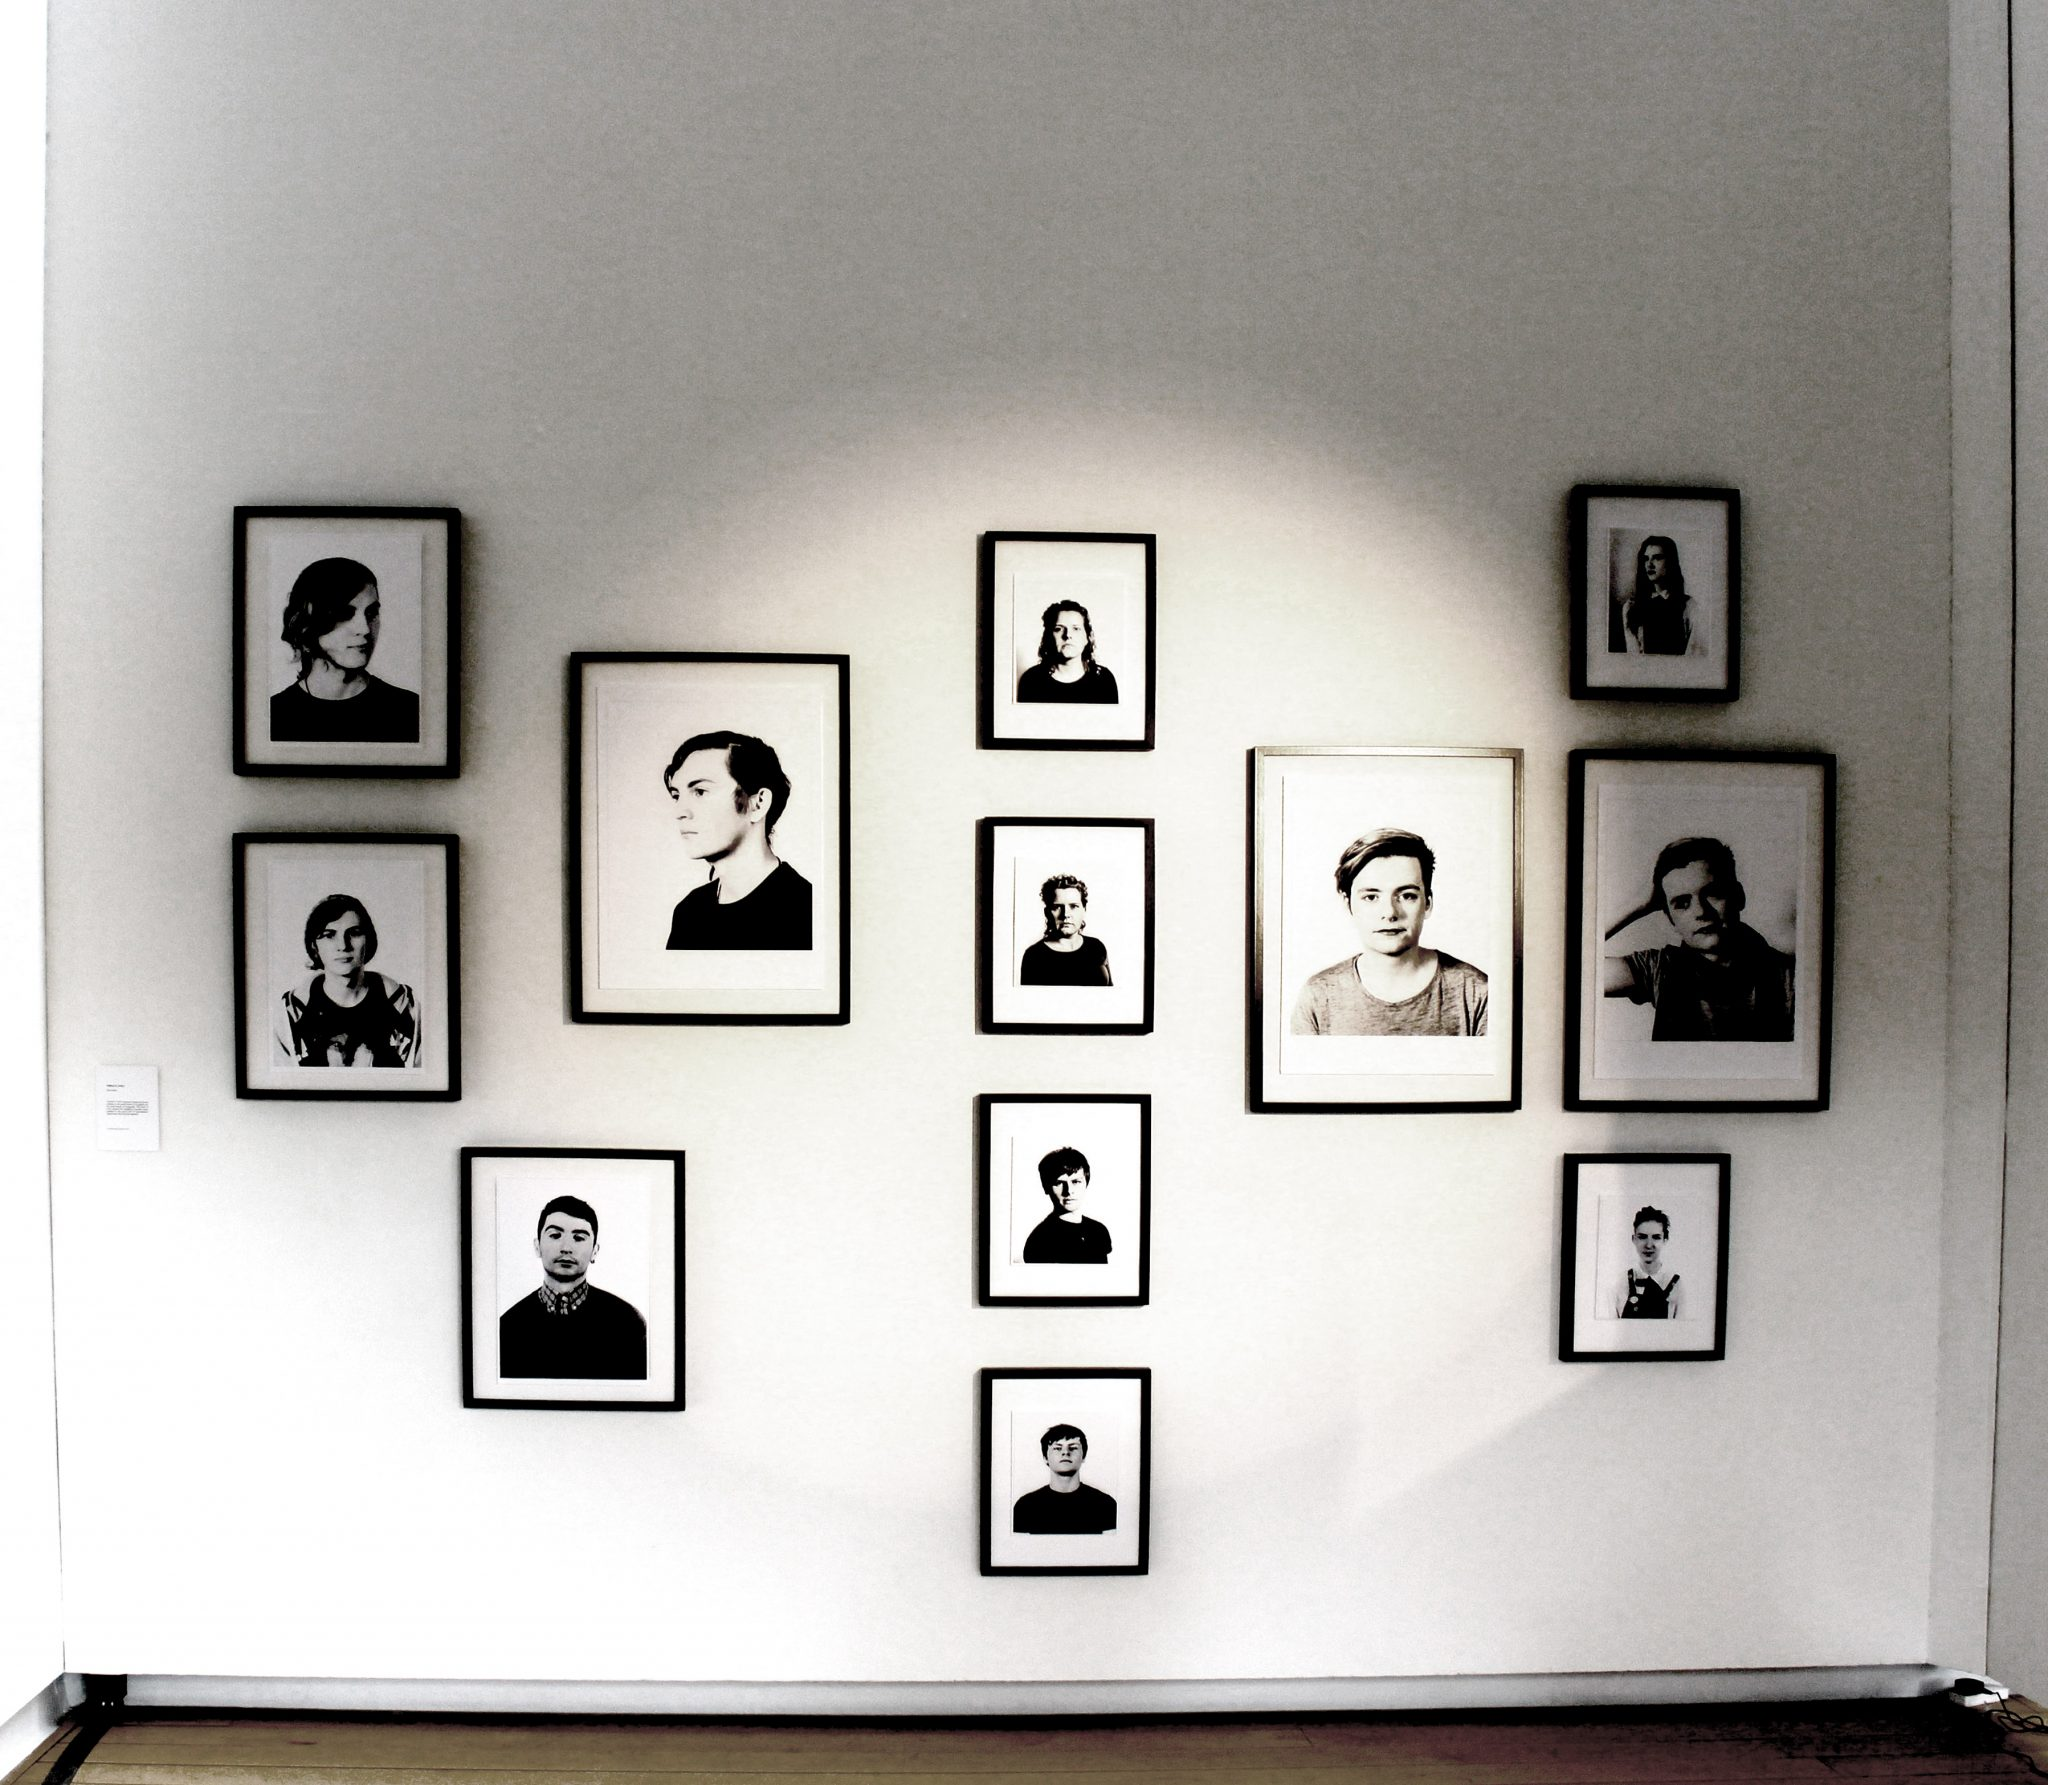 Photo exhibition at the Gallery of Photography in Dublin- portraits